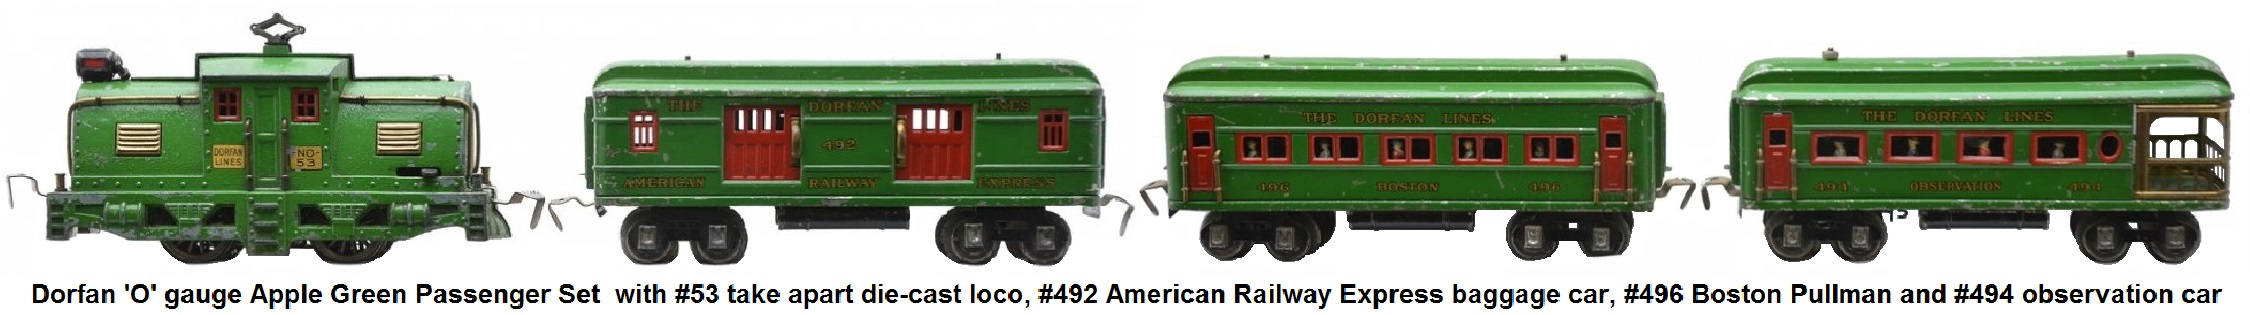 Dorfan 'O' gauge Apple Green #275 Manhattan limited Passenger Set with #53 take apart die-cast locomotive, #492 baggage, #496 Boston Pullman and #494 observation circa 1929